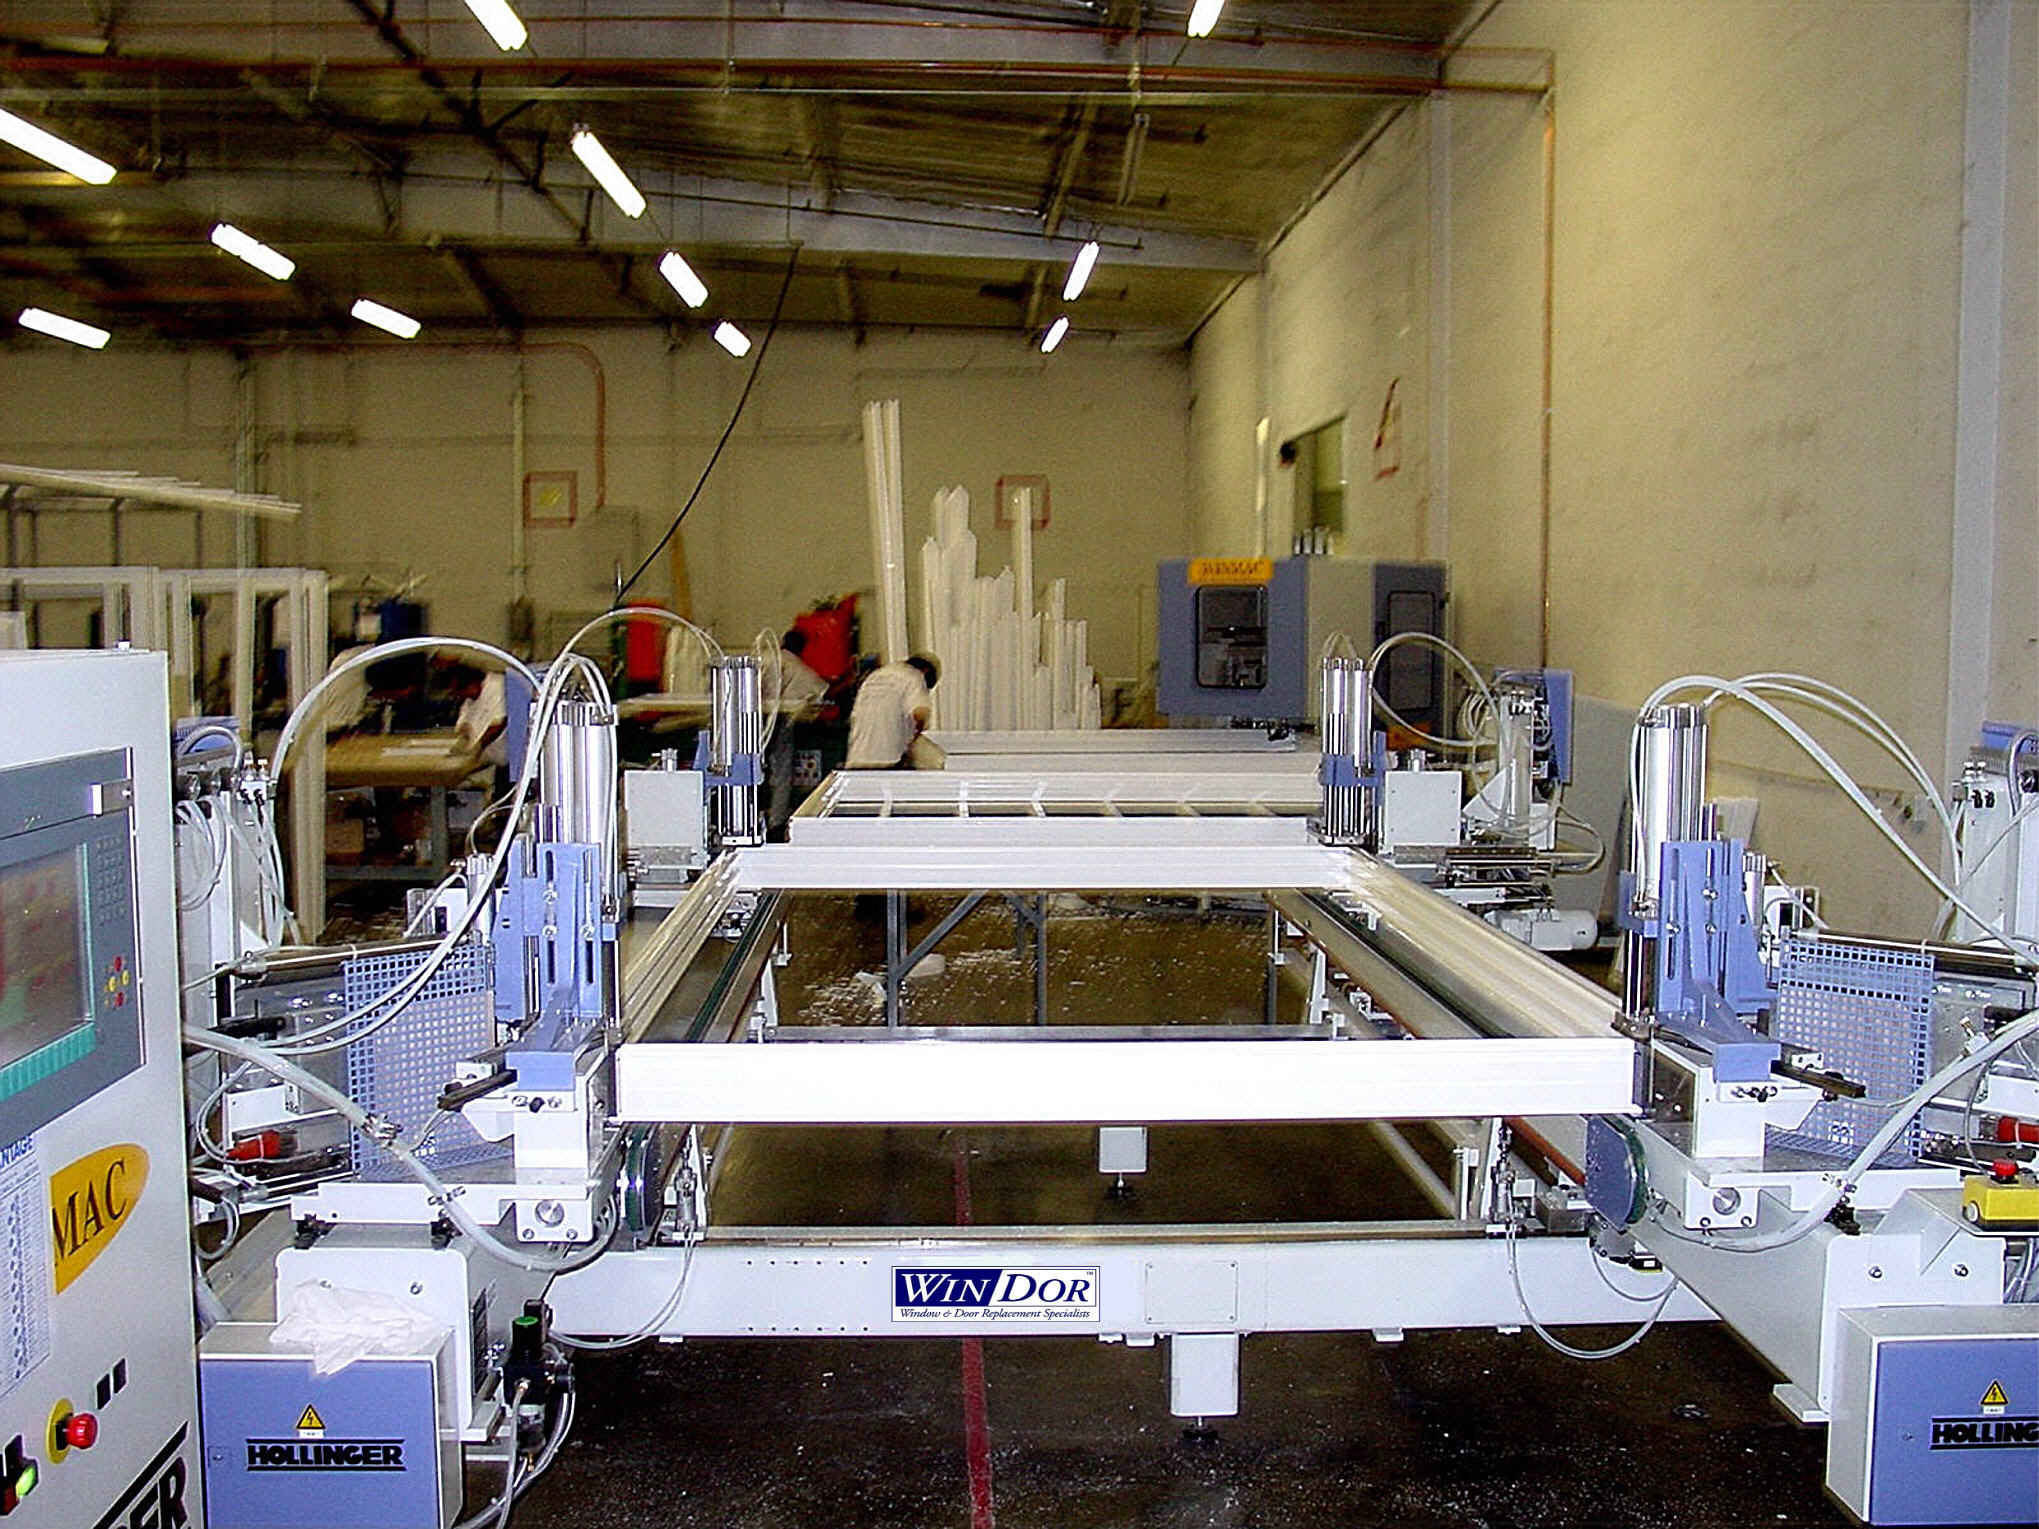 Win Dor Factory Tour Replacement Windows And Doors By